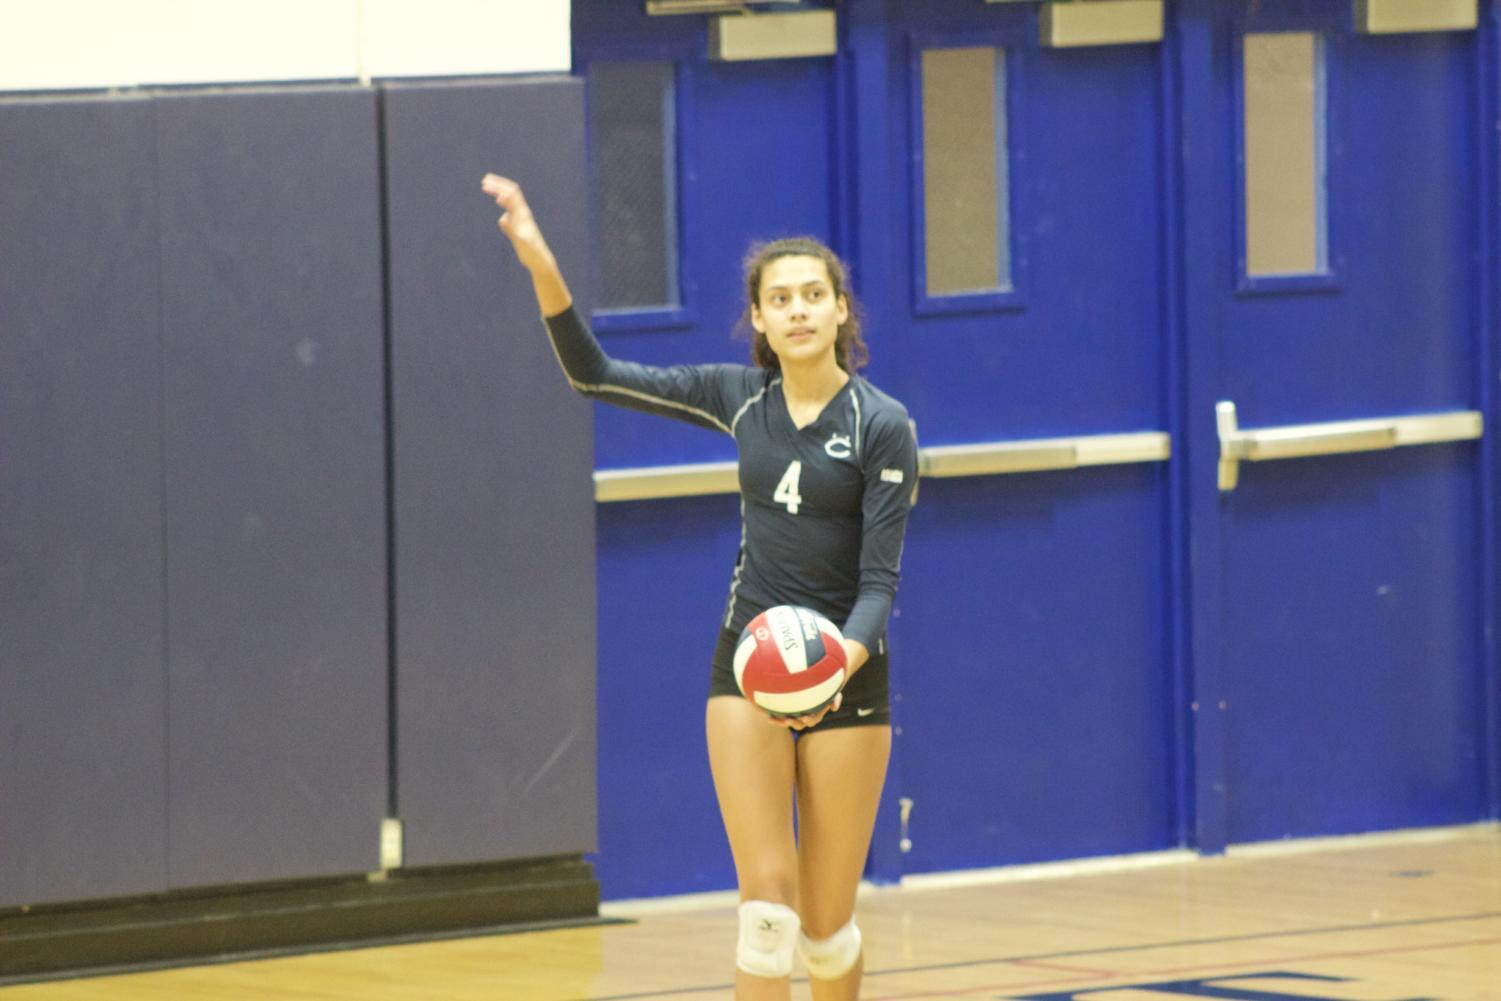 Sophie Srivastava, a senior, gets ready to serve the ball.